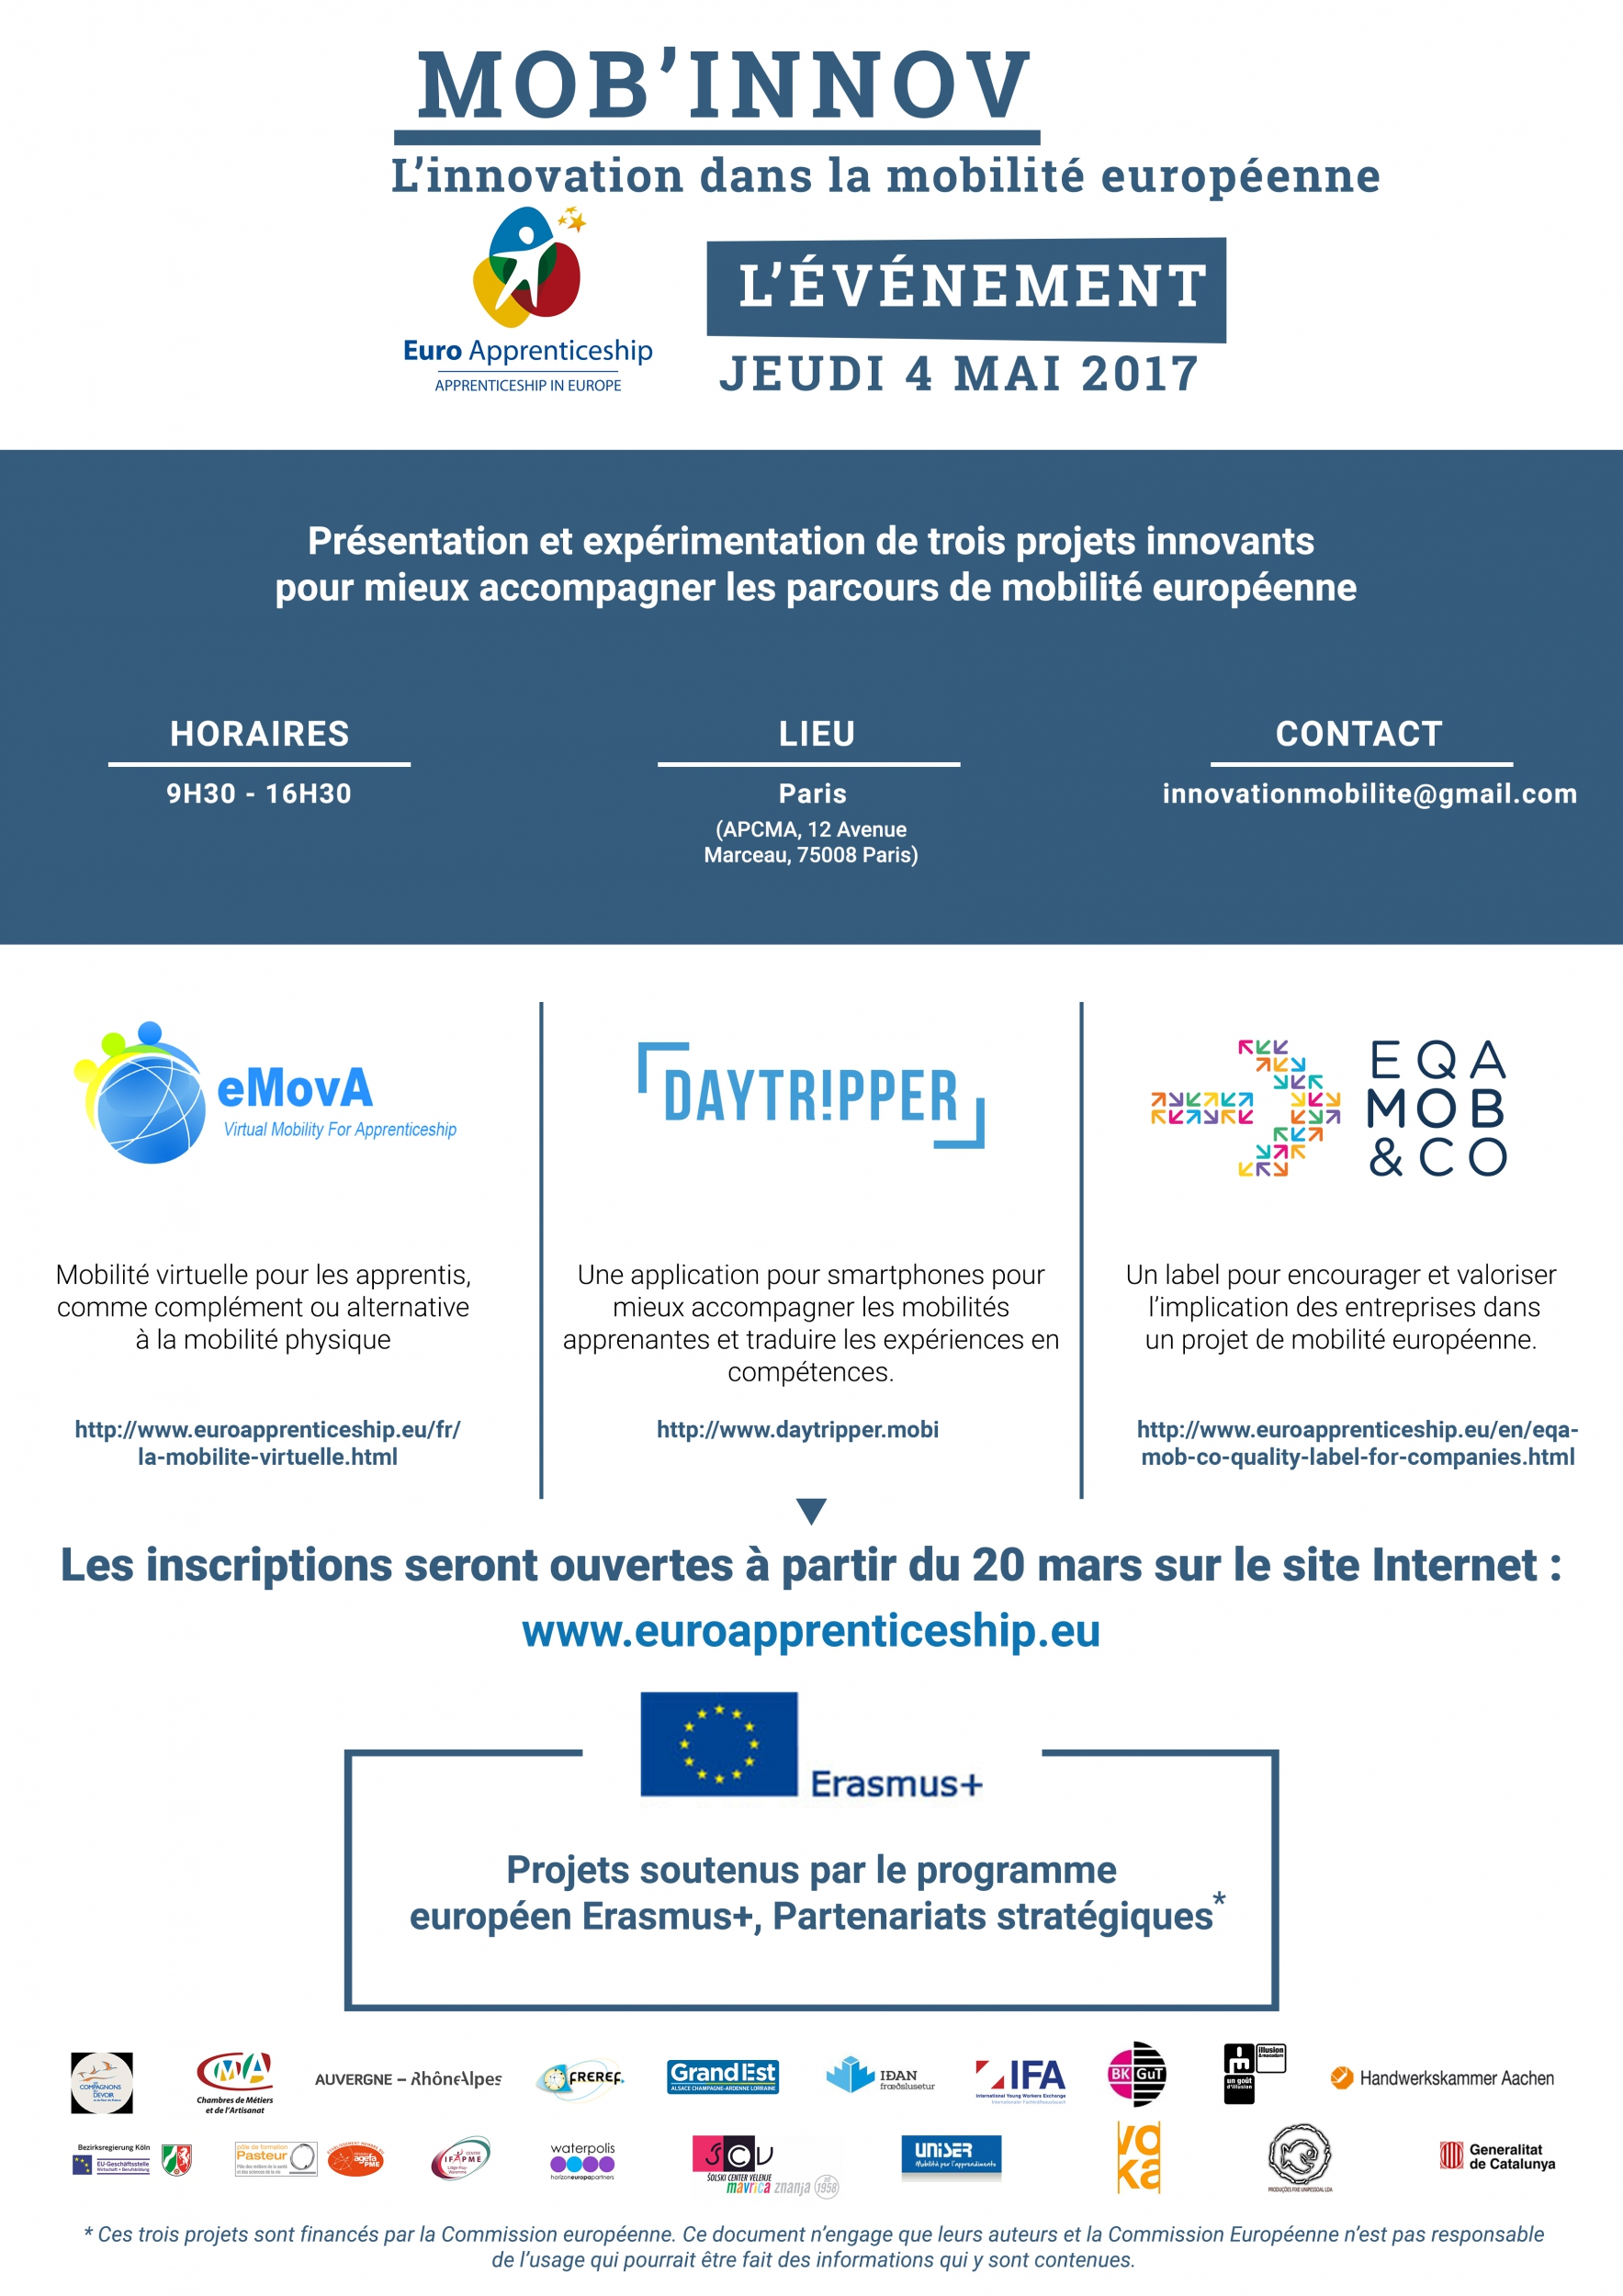 http://www.euroapprenticeship.eu/UserFiles/File/eqamob/multiplier-events/save-the-date-fr.jpg